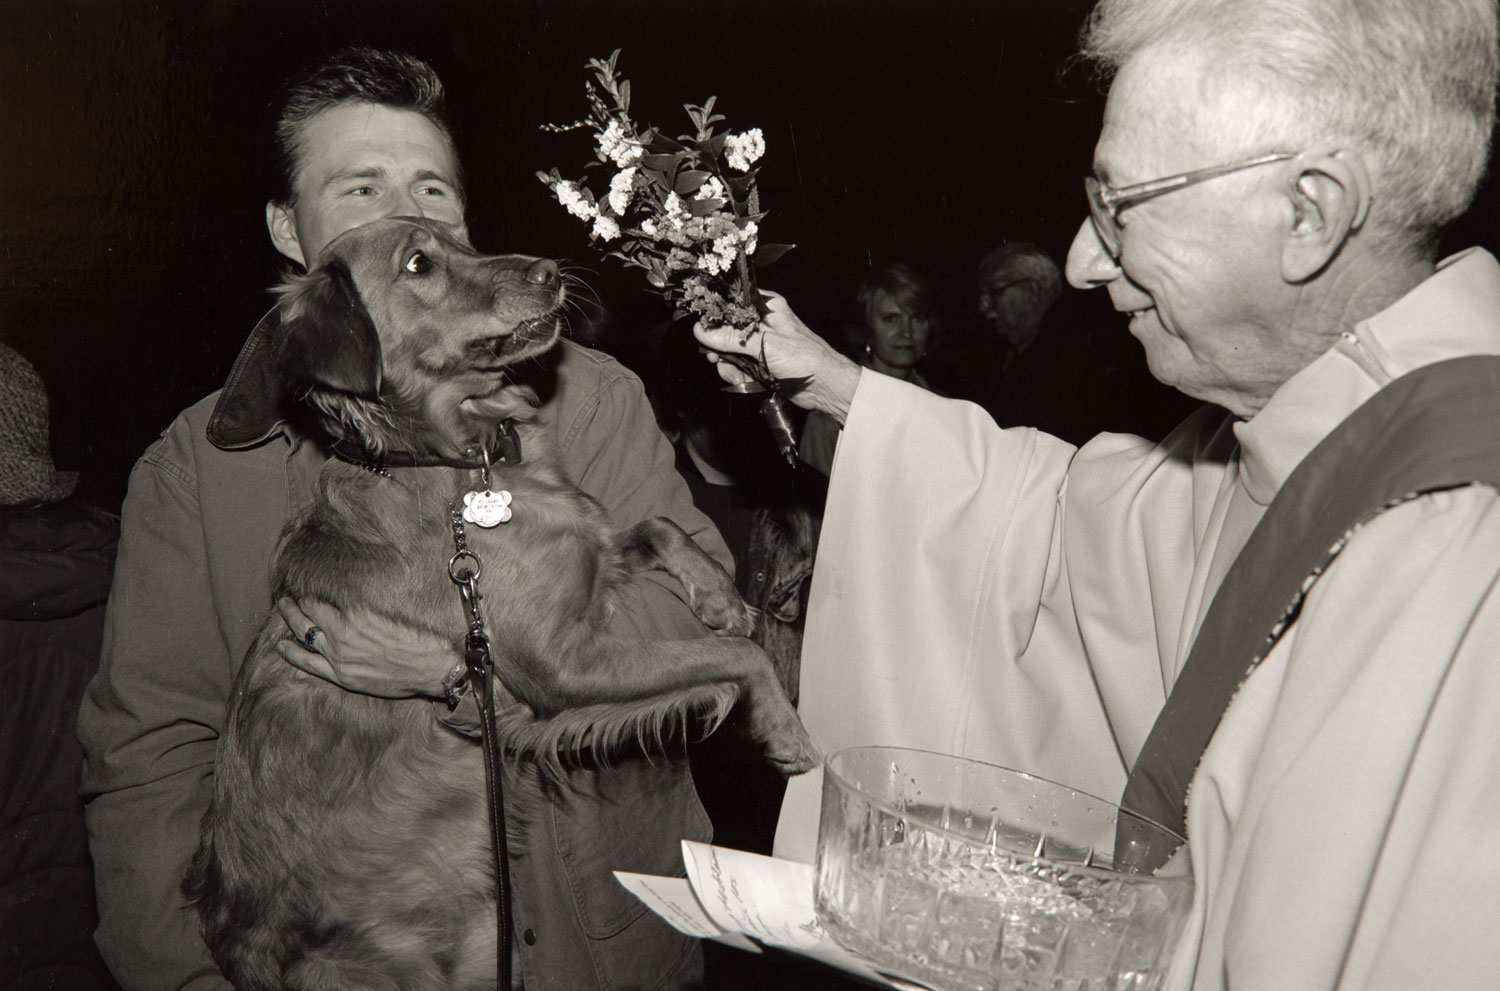 Blessing of the Animals, St. Mary's Basilica, Minneapolis (II)